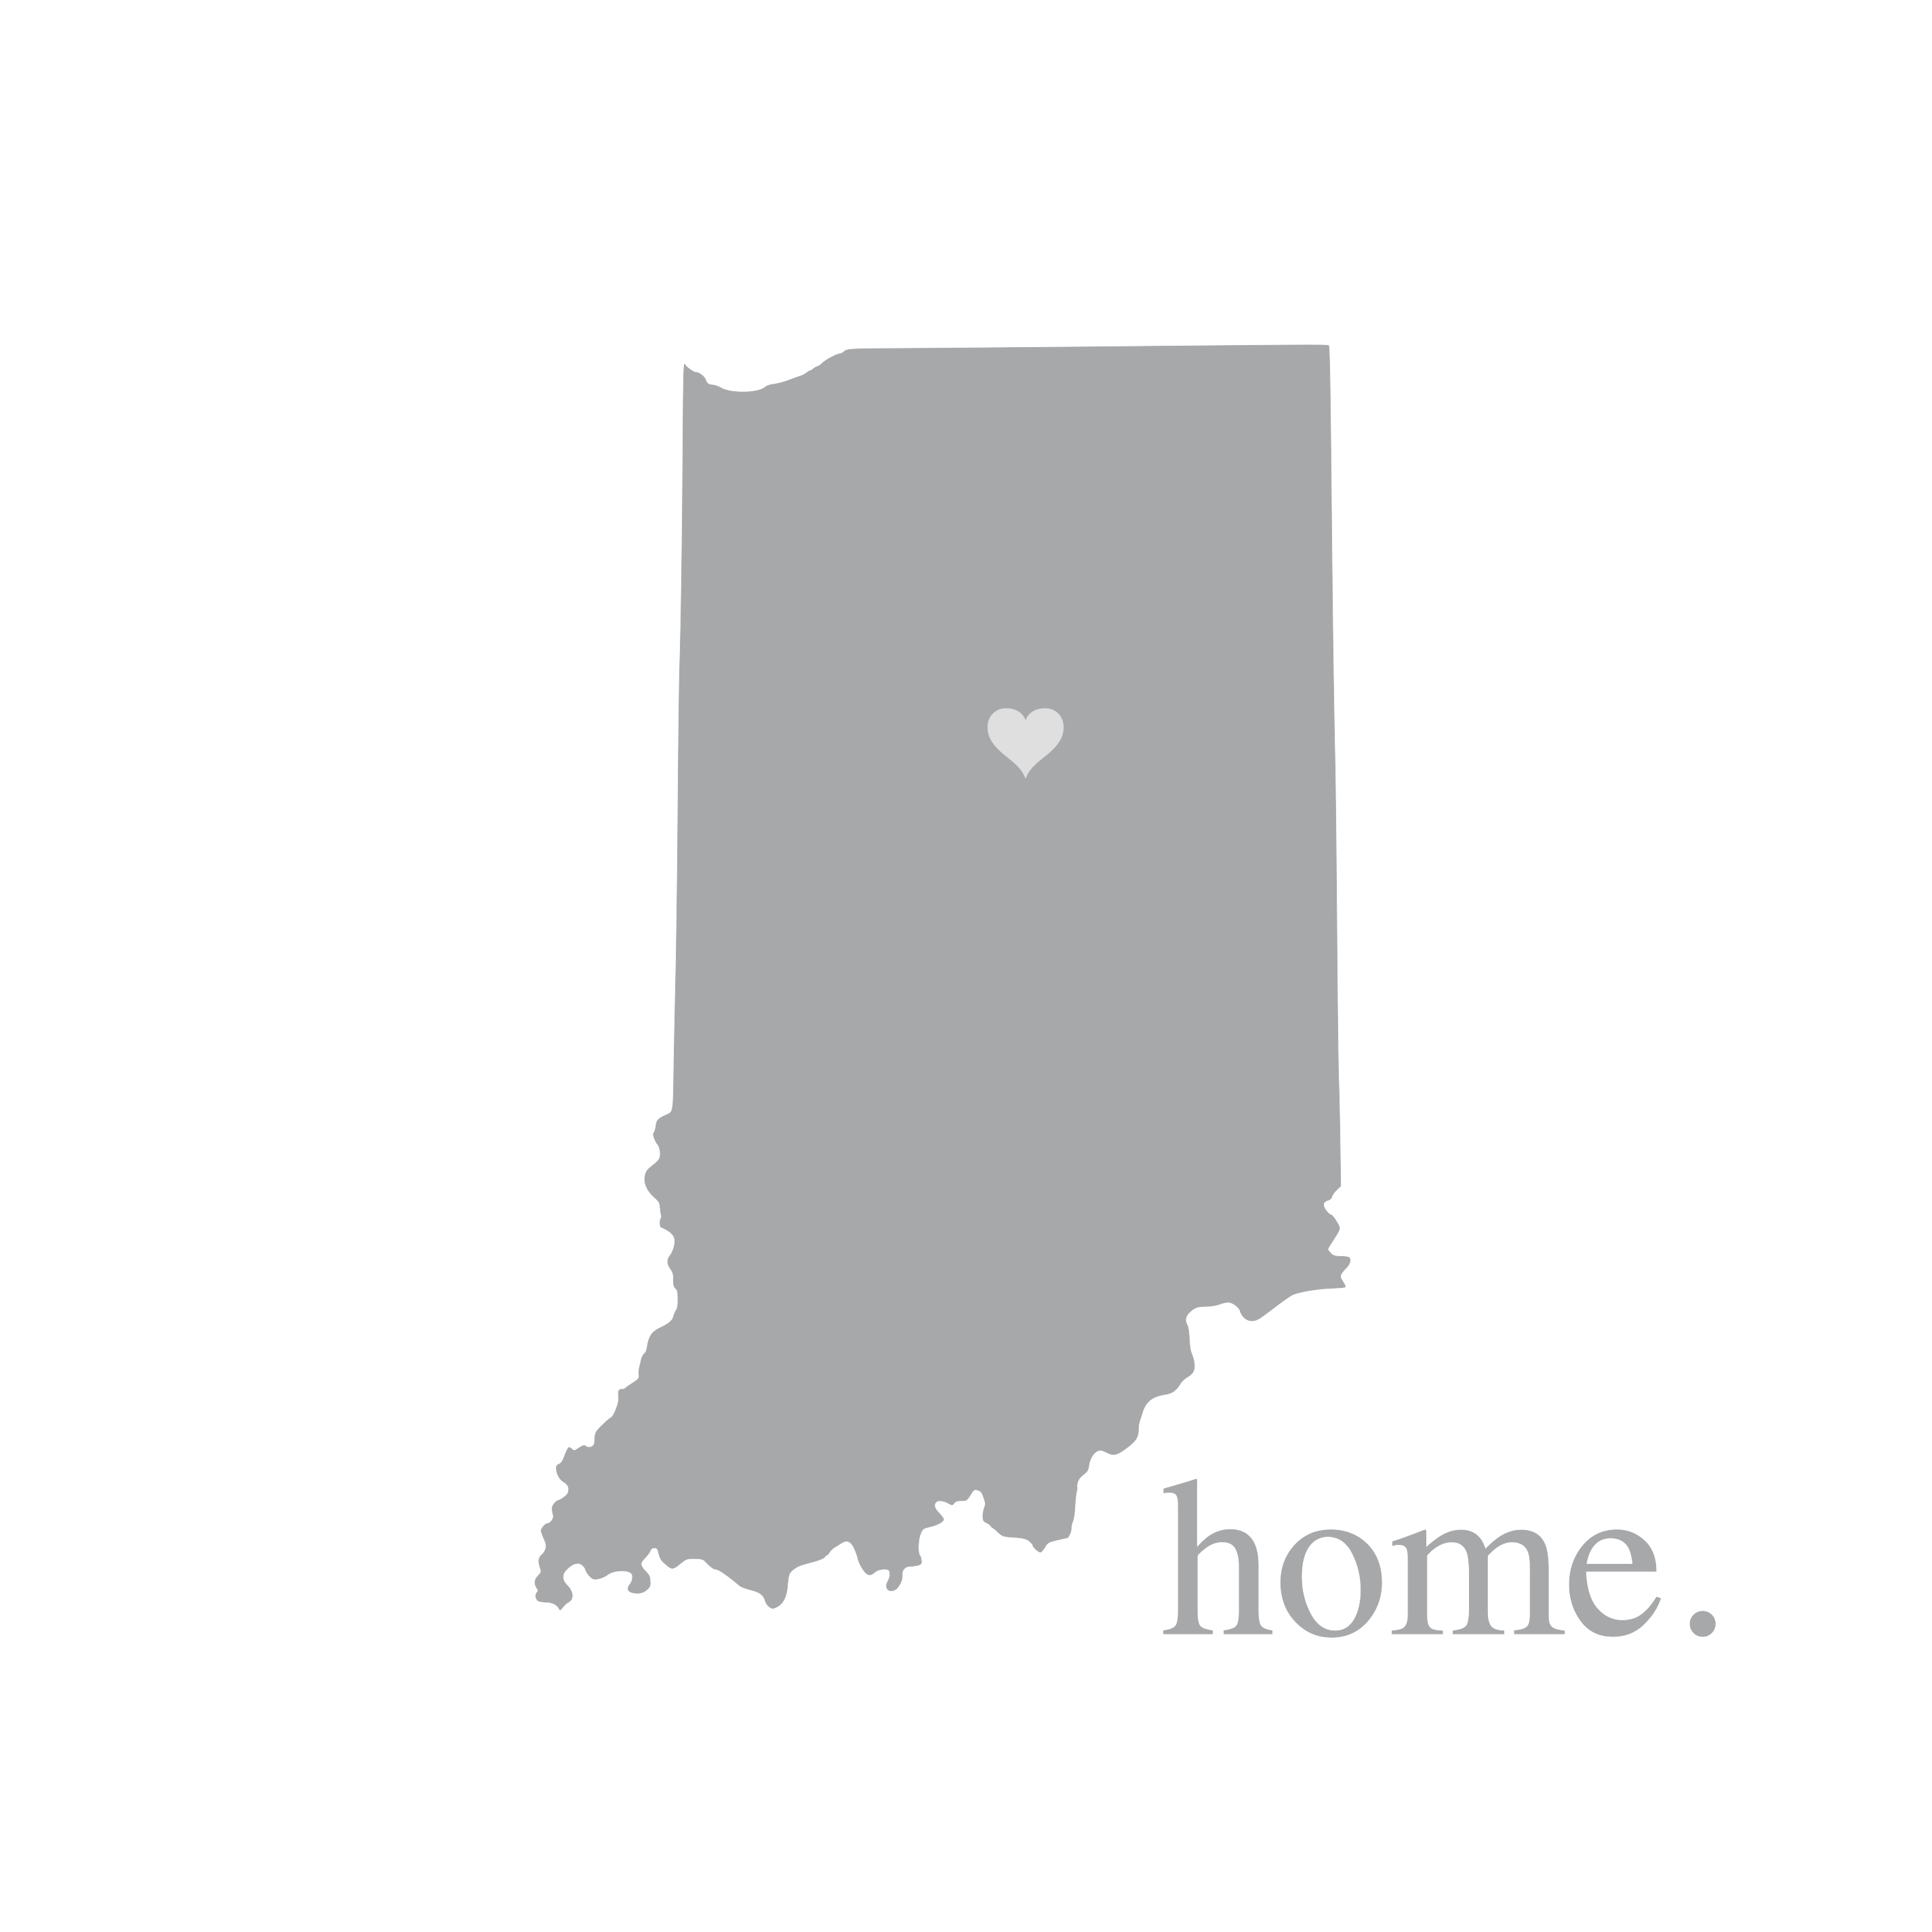 8130 Indiana Home State